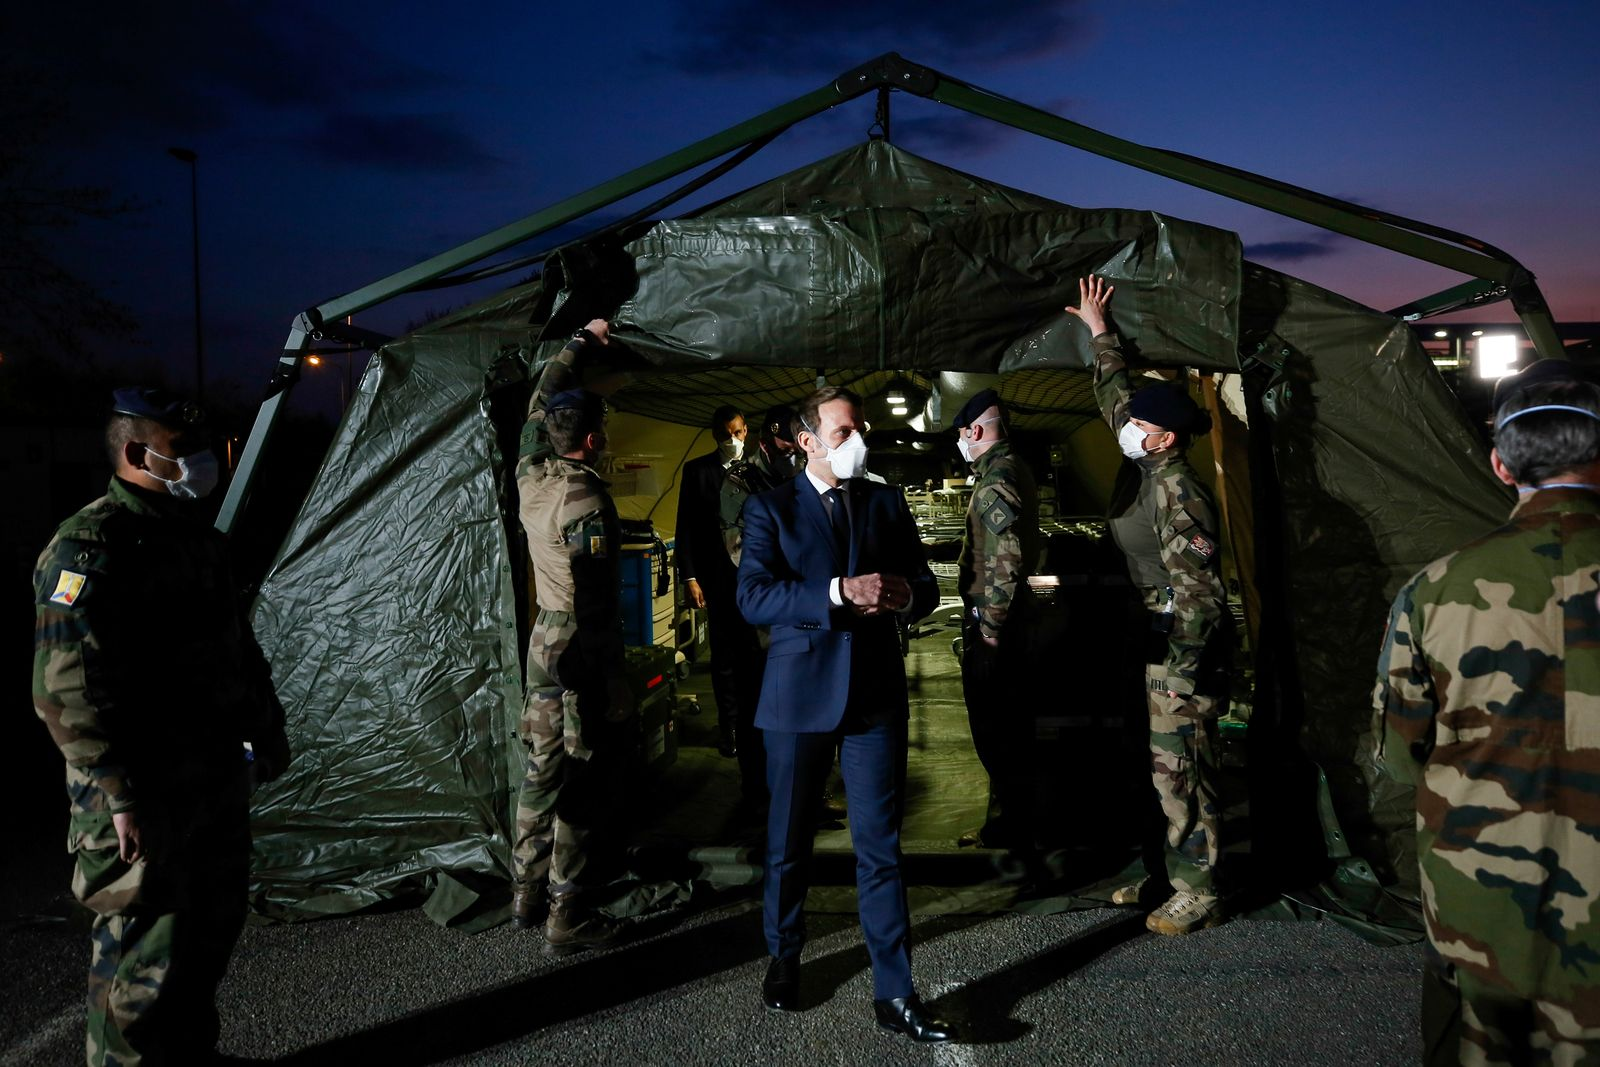 French President Macron visits a military field hospital in Mulhouse